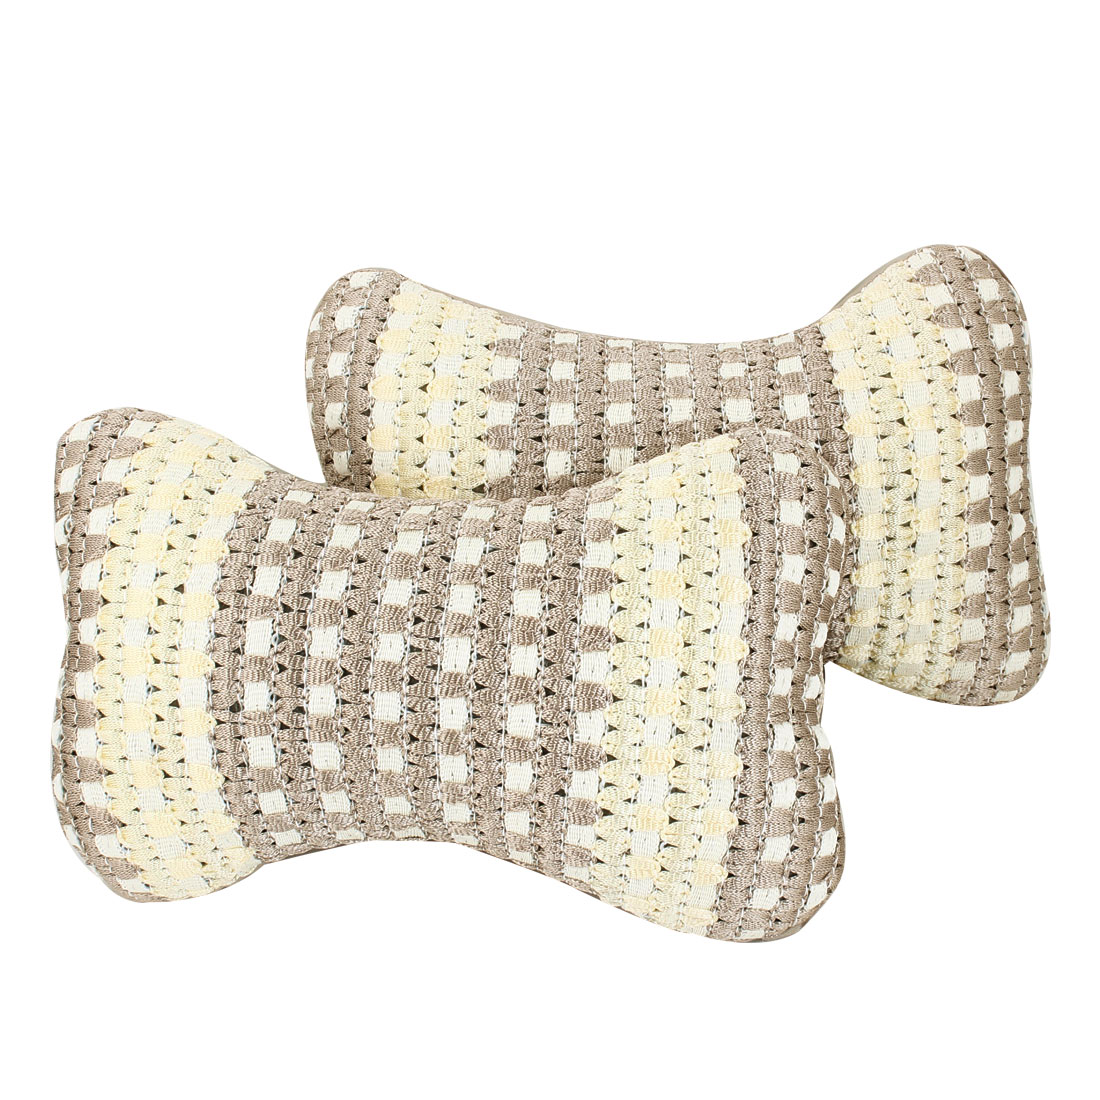 2 x Ivory Khaki Bone Design Weave Pattern Head Neck Rest Pillow Pad for Car